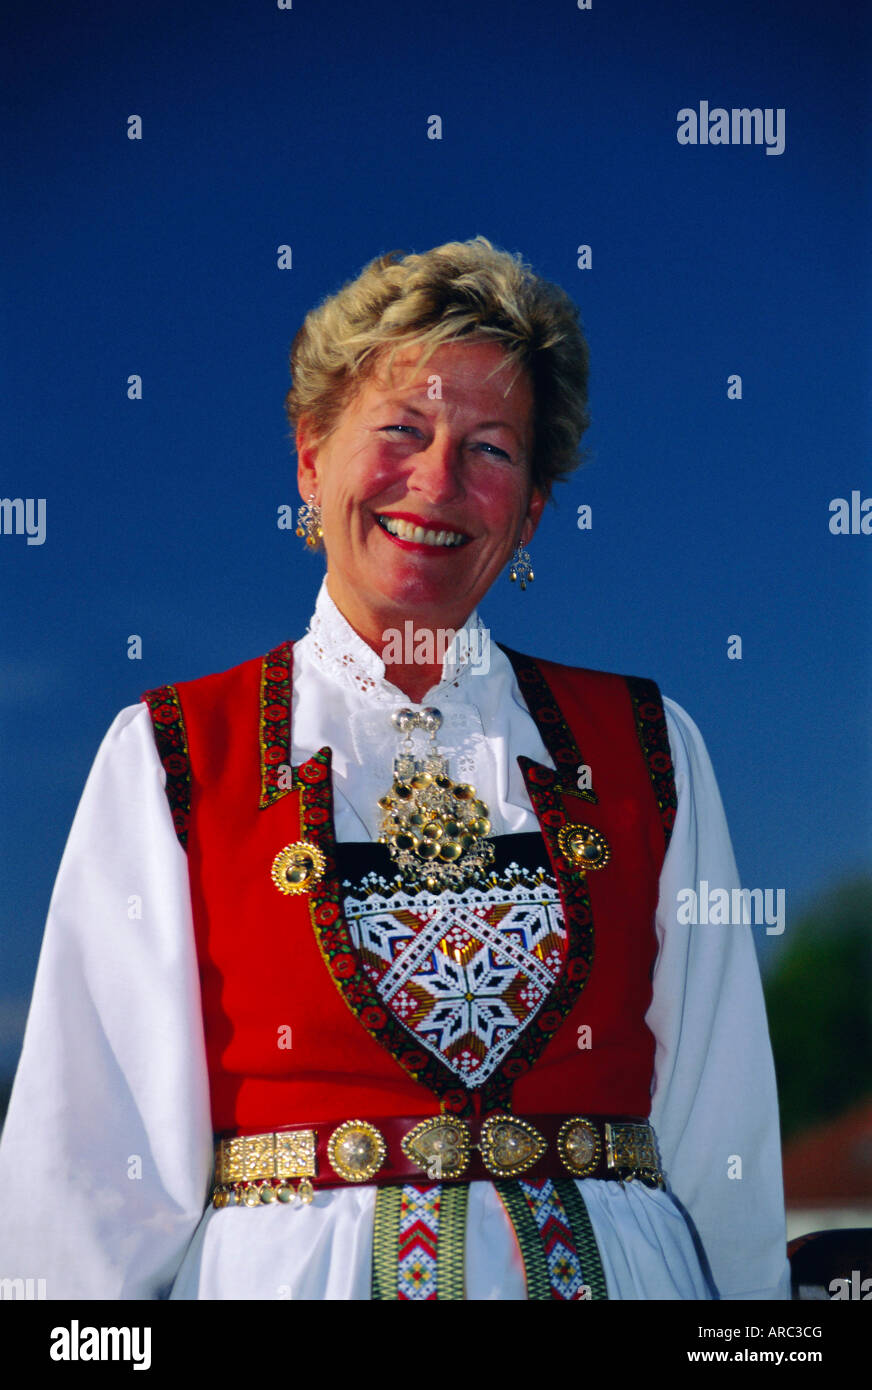 Portrait of a woman in national dress on Norwegian National Day (17th May), Oslo, Norway, Scandinavia, Europe Stock Photo